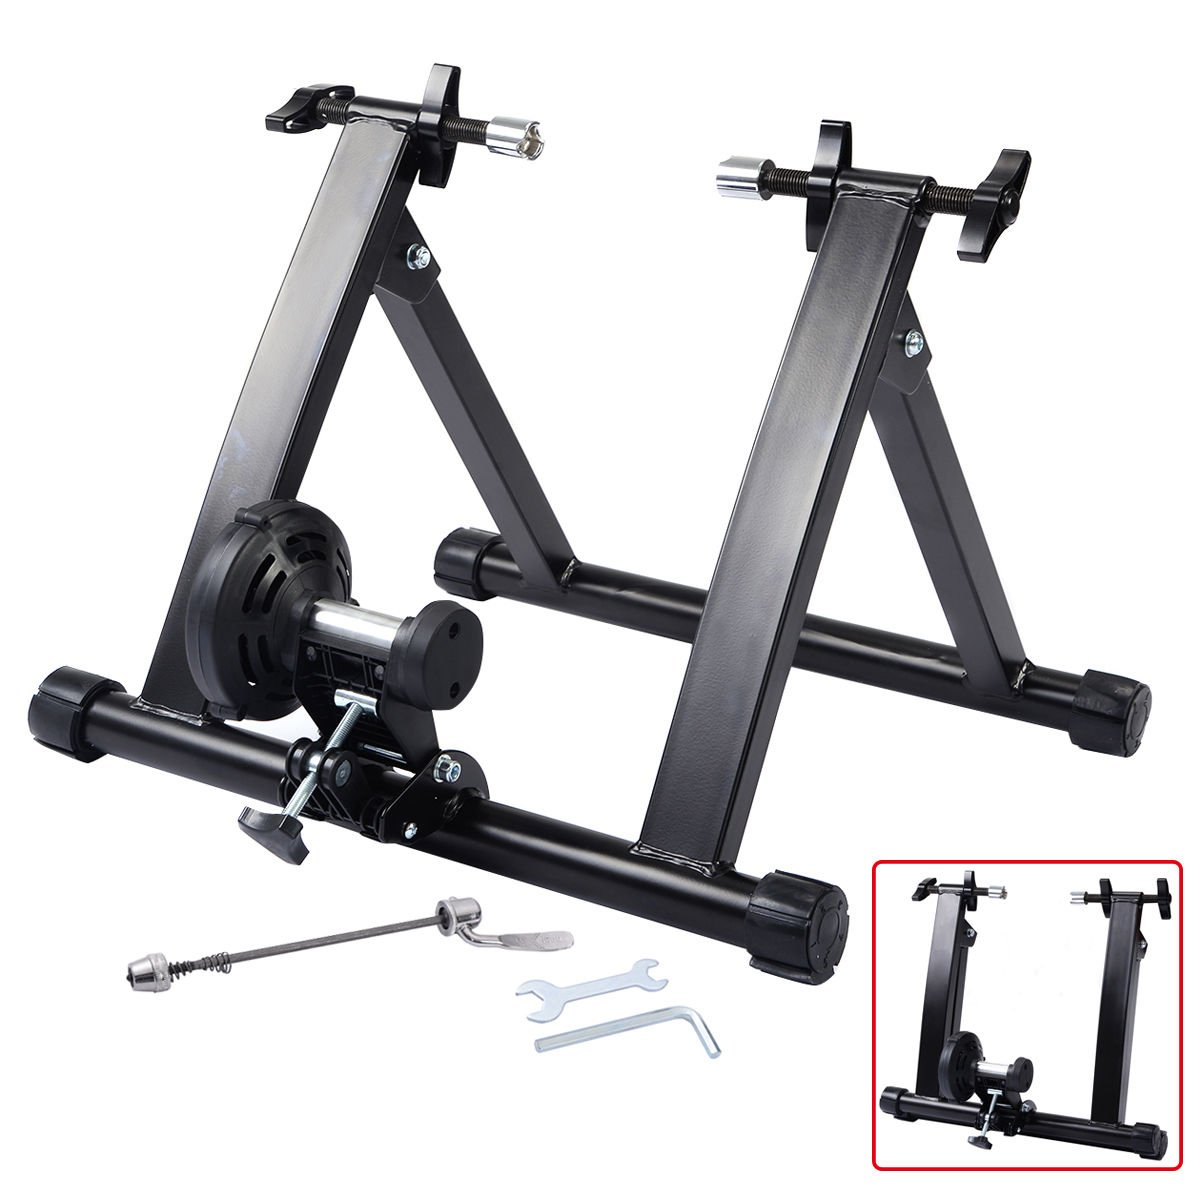 Walomes Bike Trainer Stationary Magnetic Exercise Bicycle Stand for Indoor Riding Portable with Noise Reduction Technology Cycle Products Indoor Portable Magnetic Work Out Bicycle Trainer